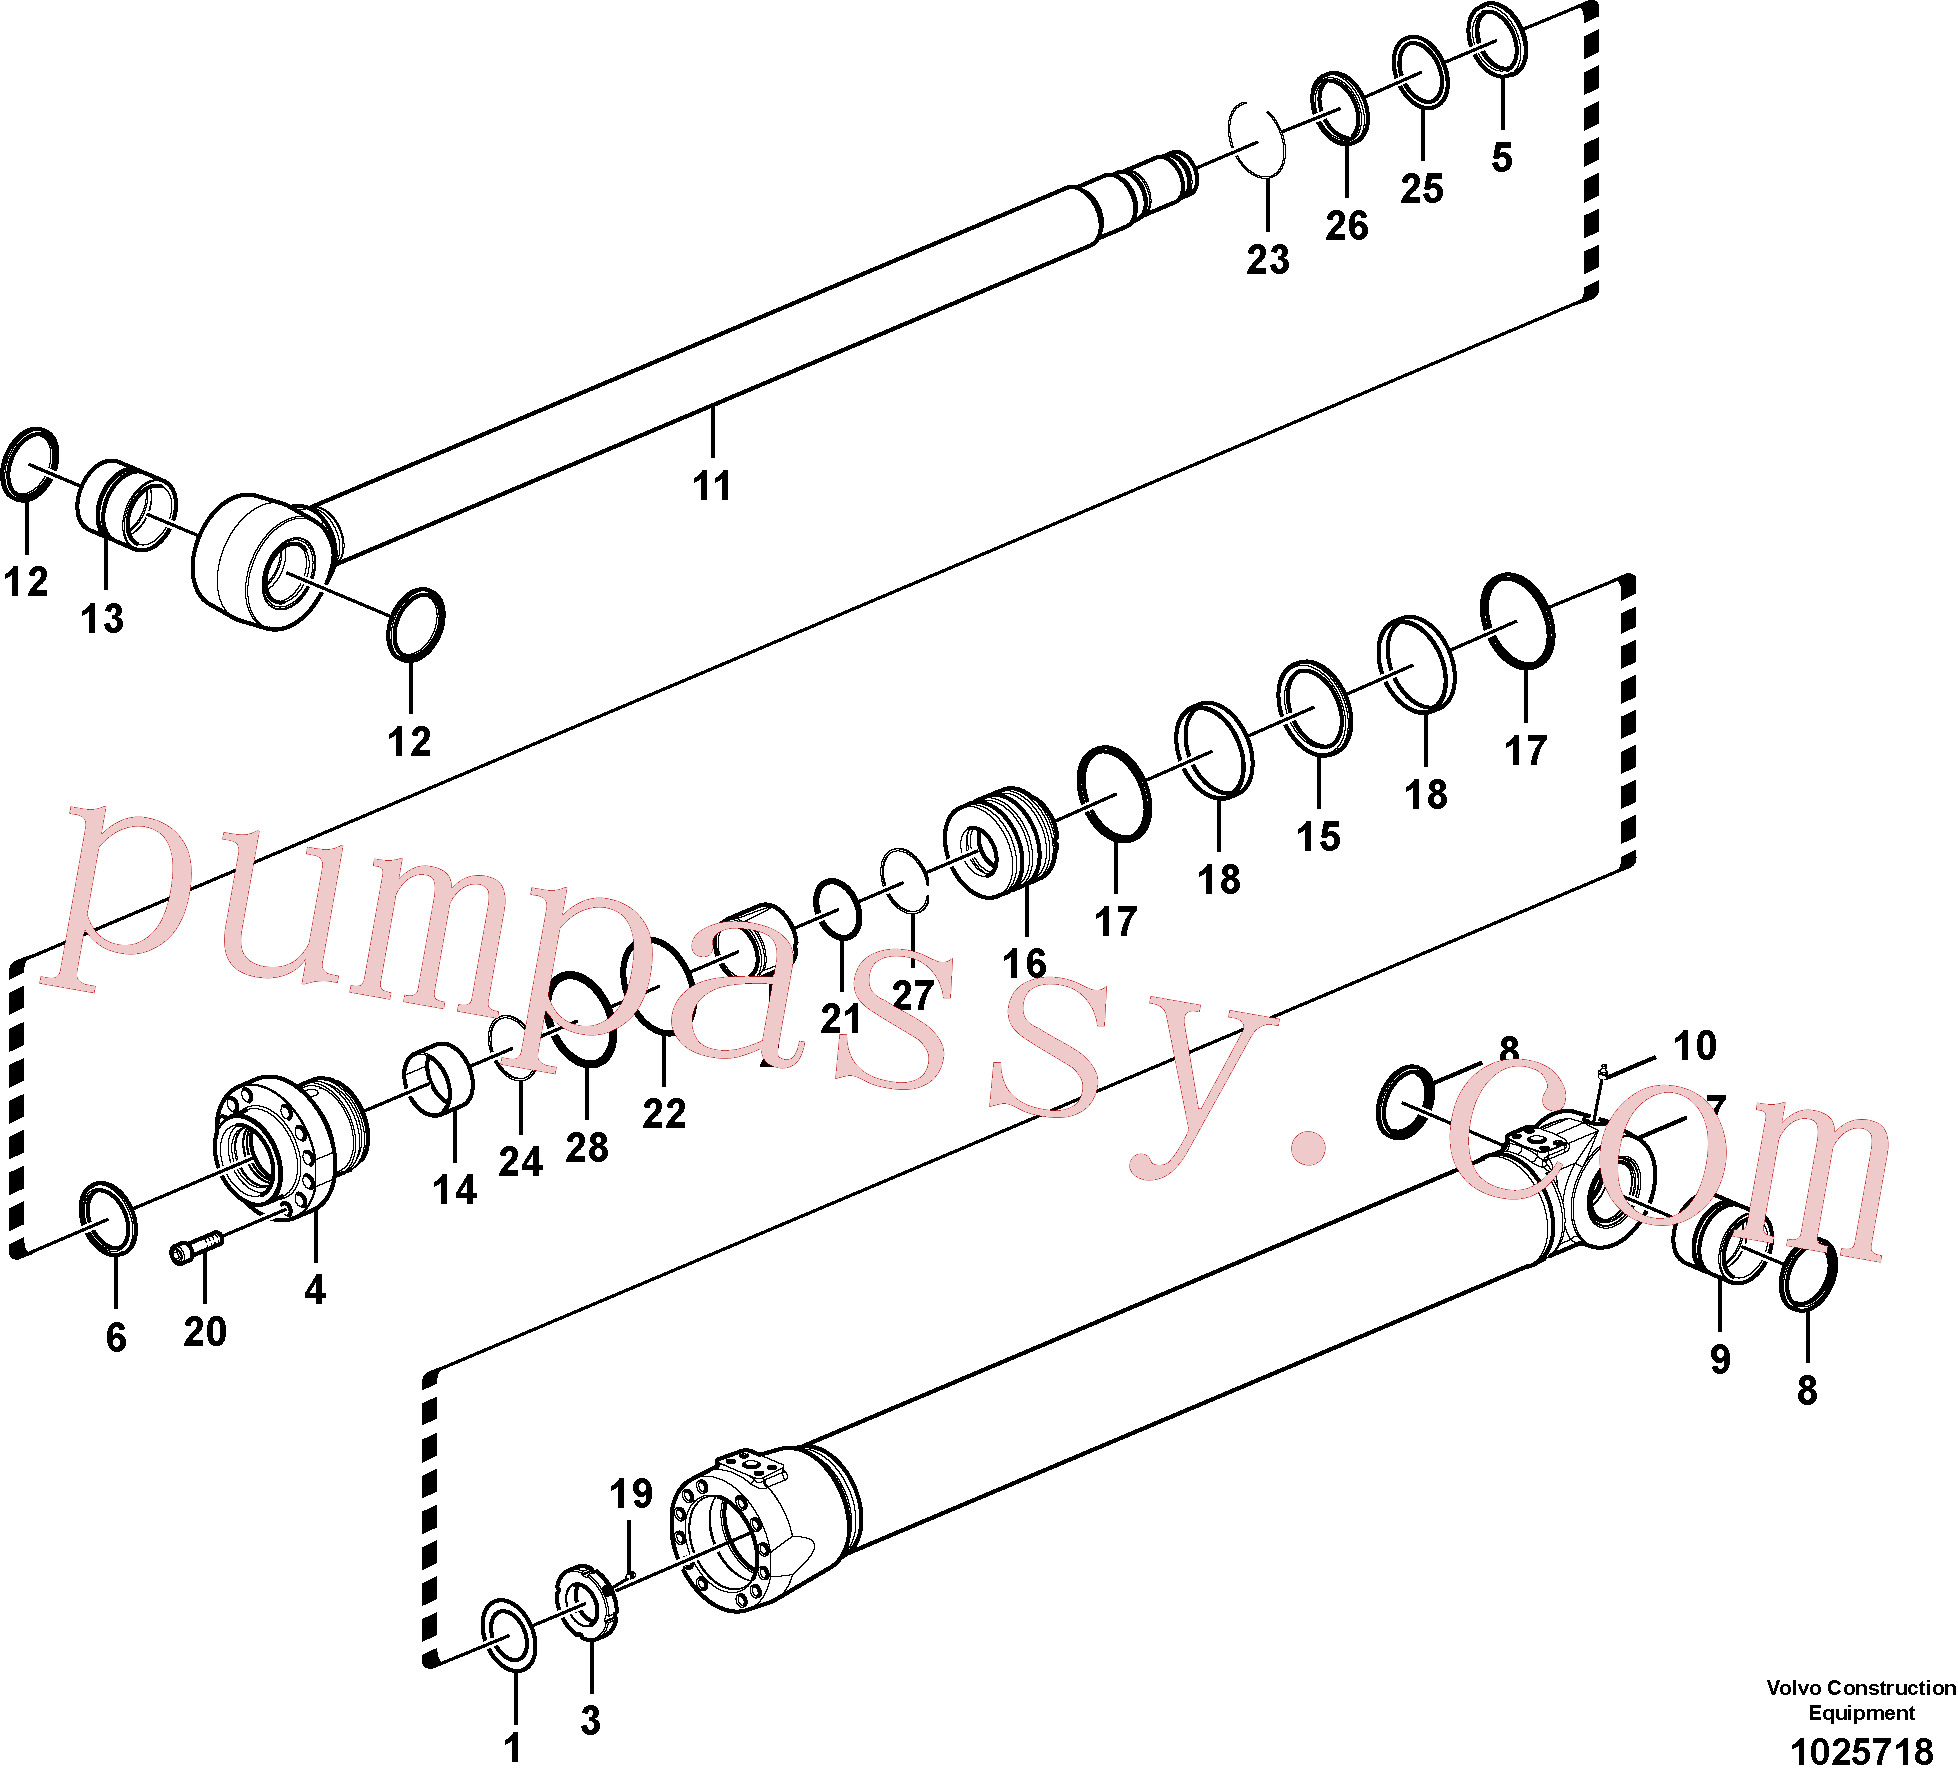 SA1146-03170 for Volvo Boom cylinder, Boom and arm cylinder(1025718 assembly)